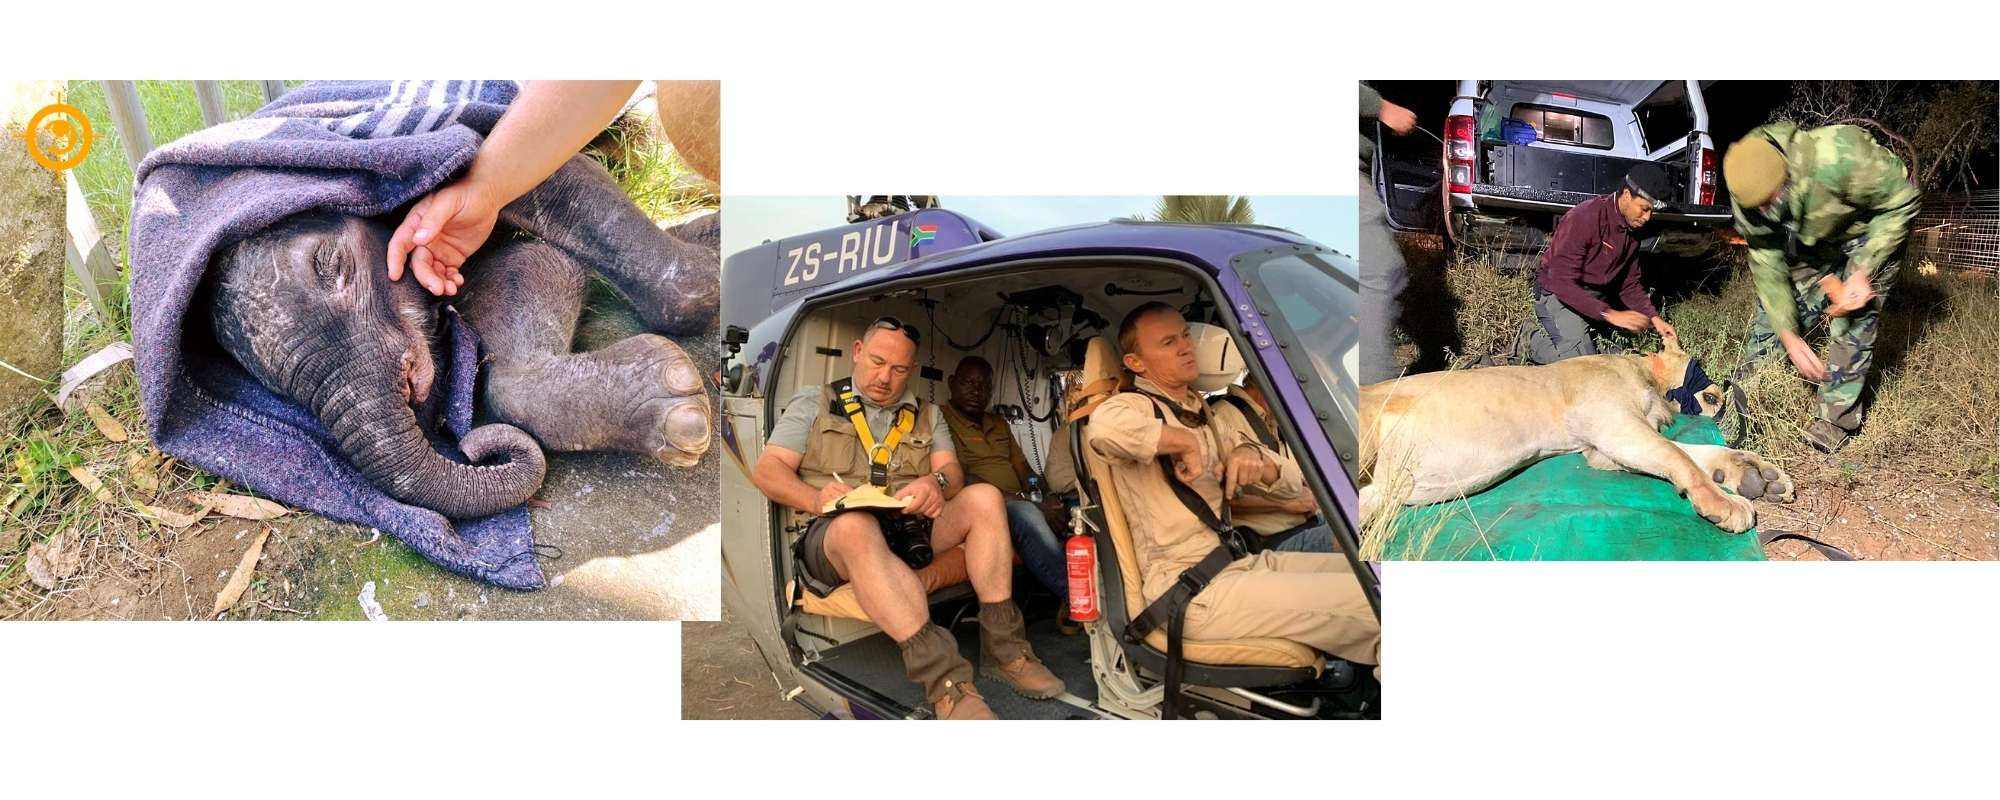 Saving The Survivors working on injured wildlife in South Africa - Wild In Africa